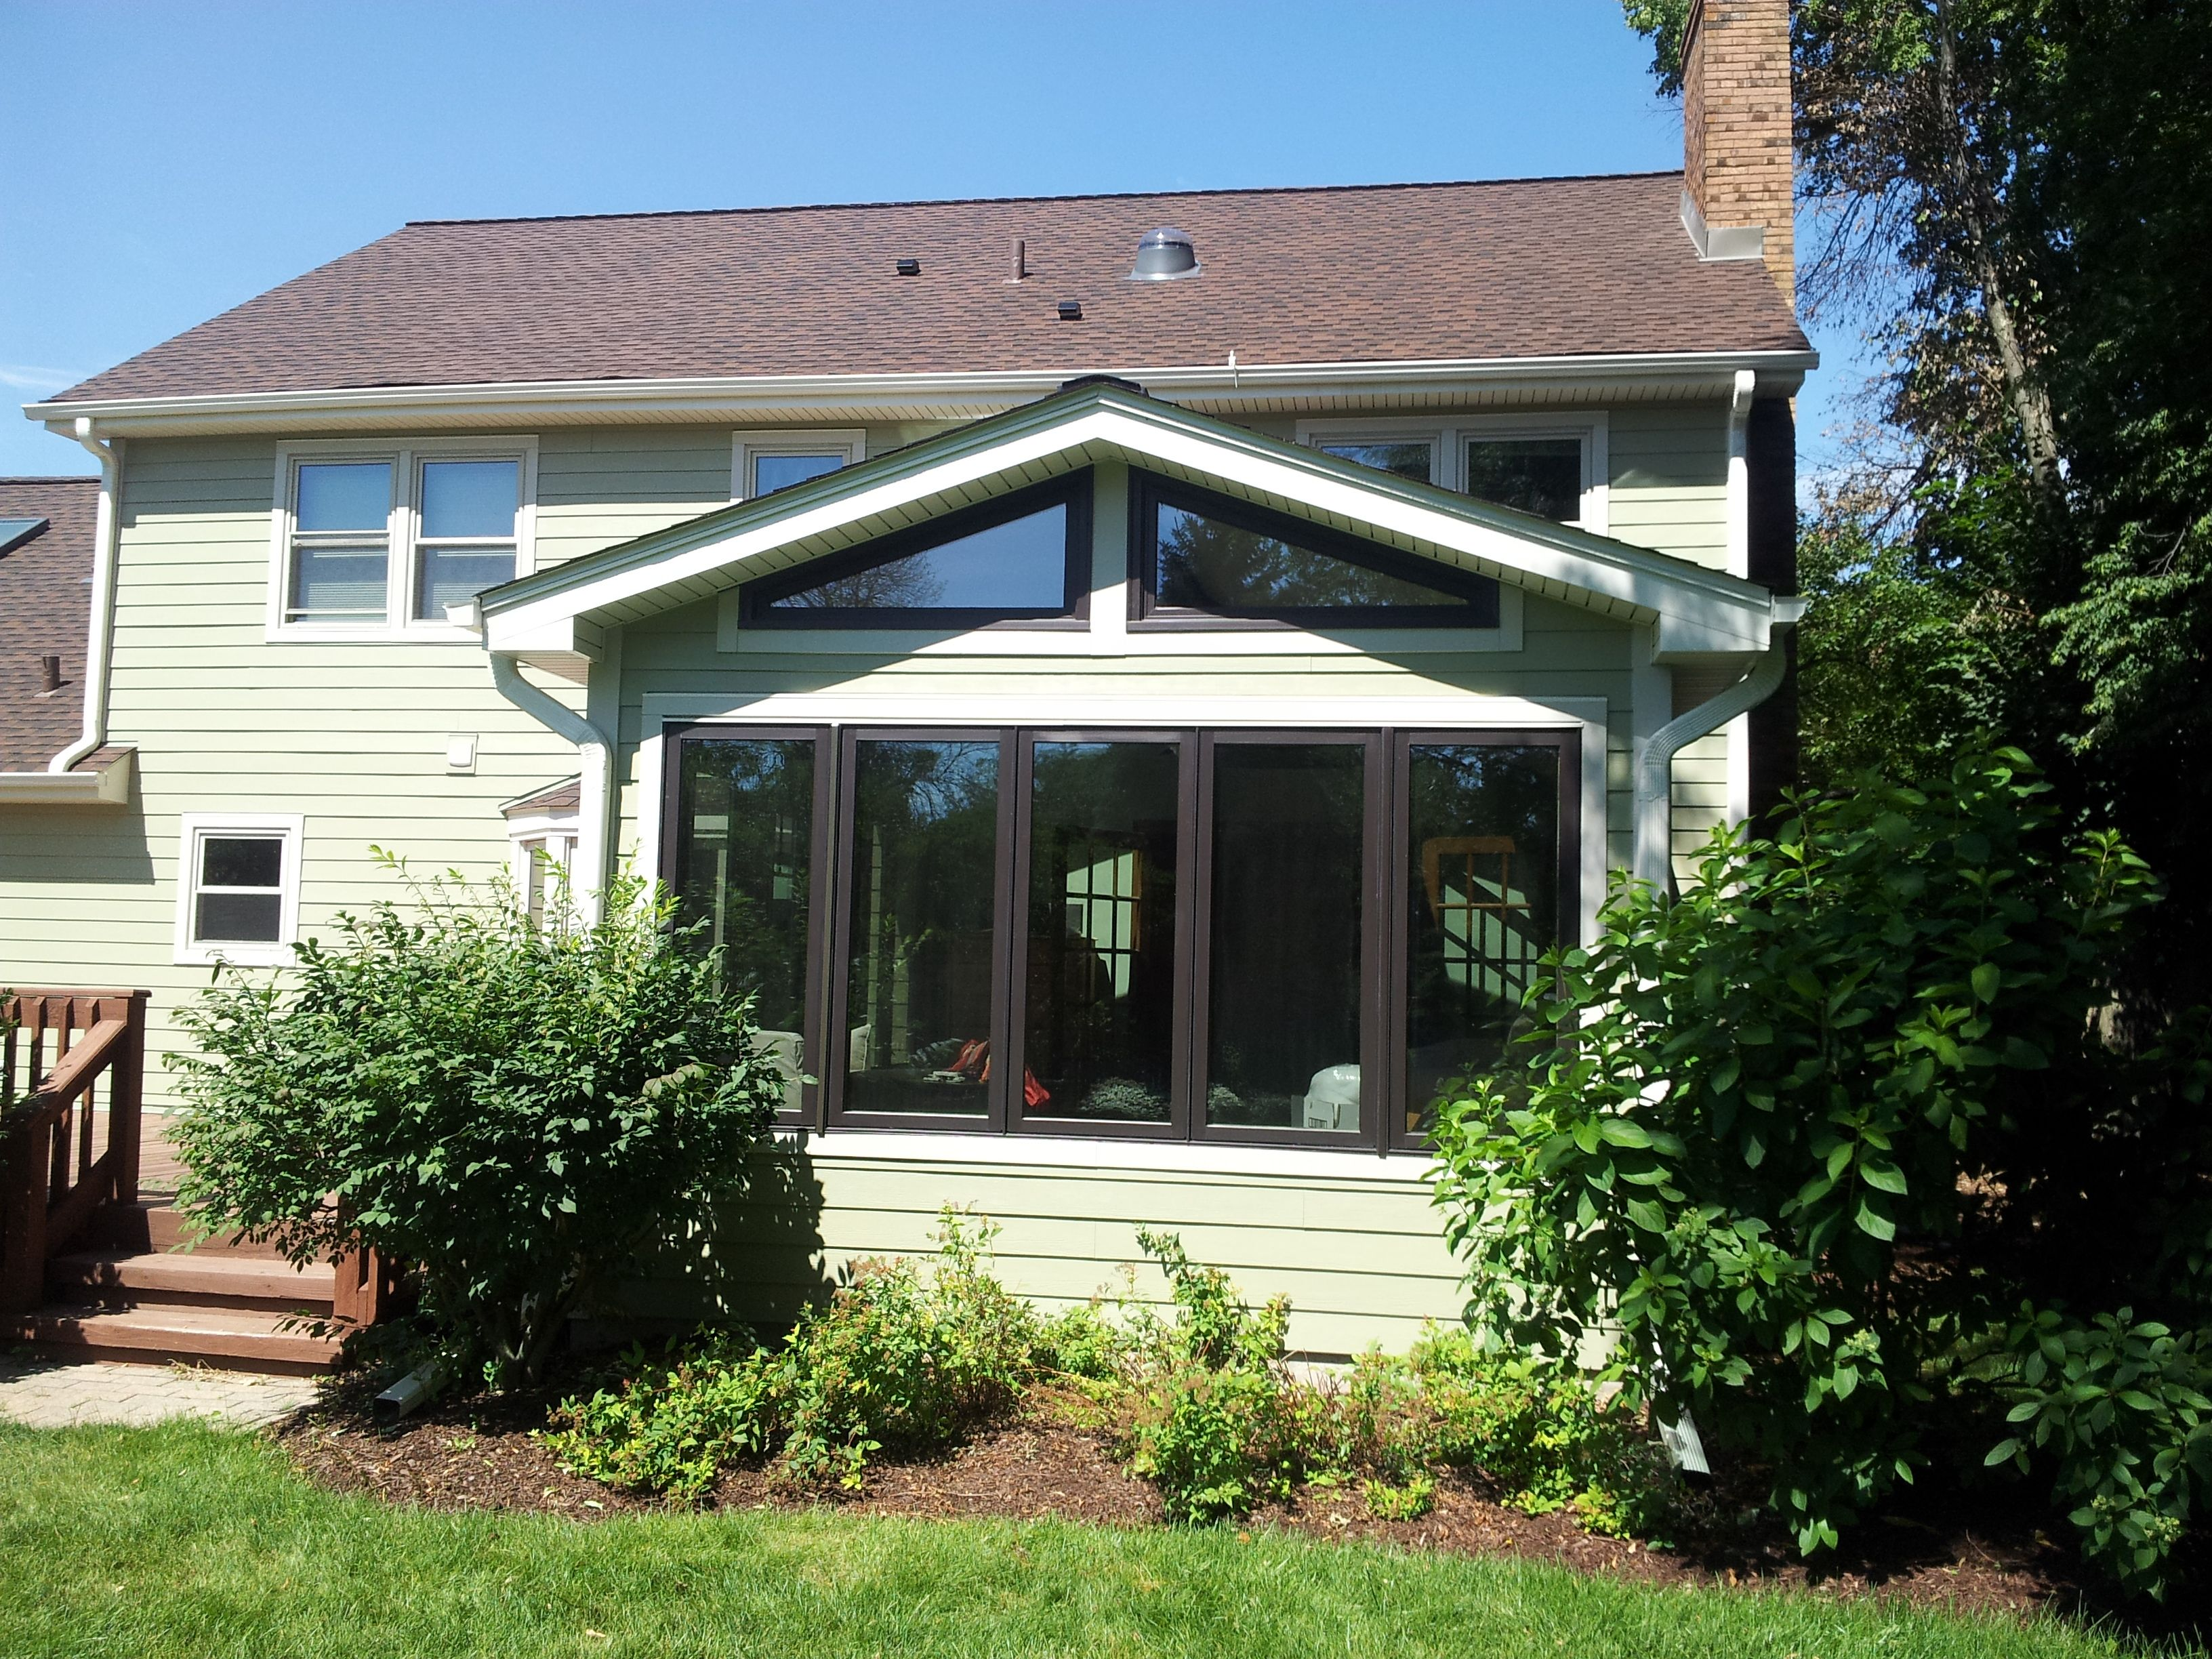 Siding Windows Roofing Contractors Naperville Il Siding James Hardie Siding Hardie Siding